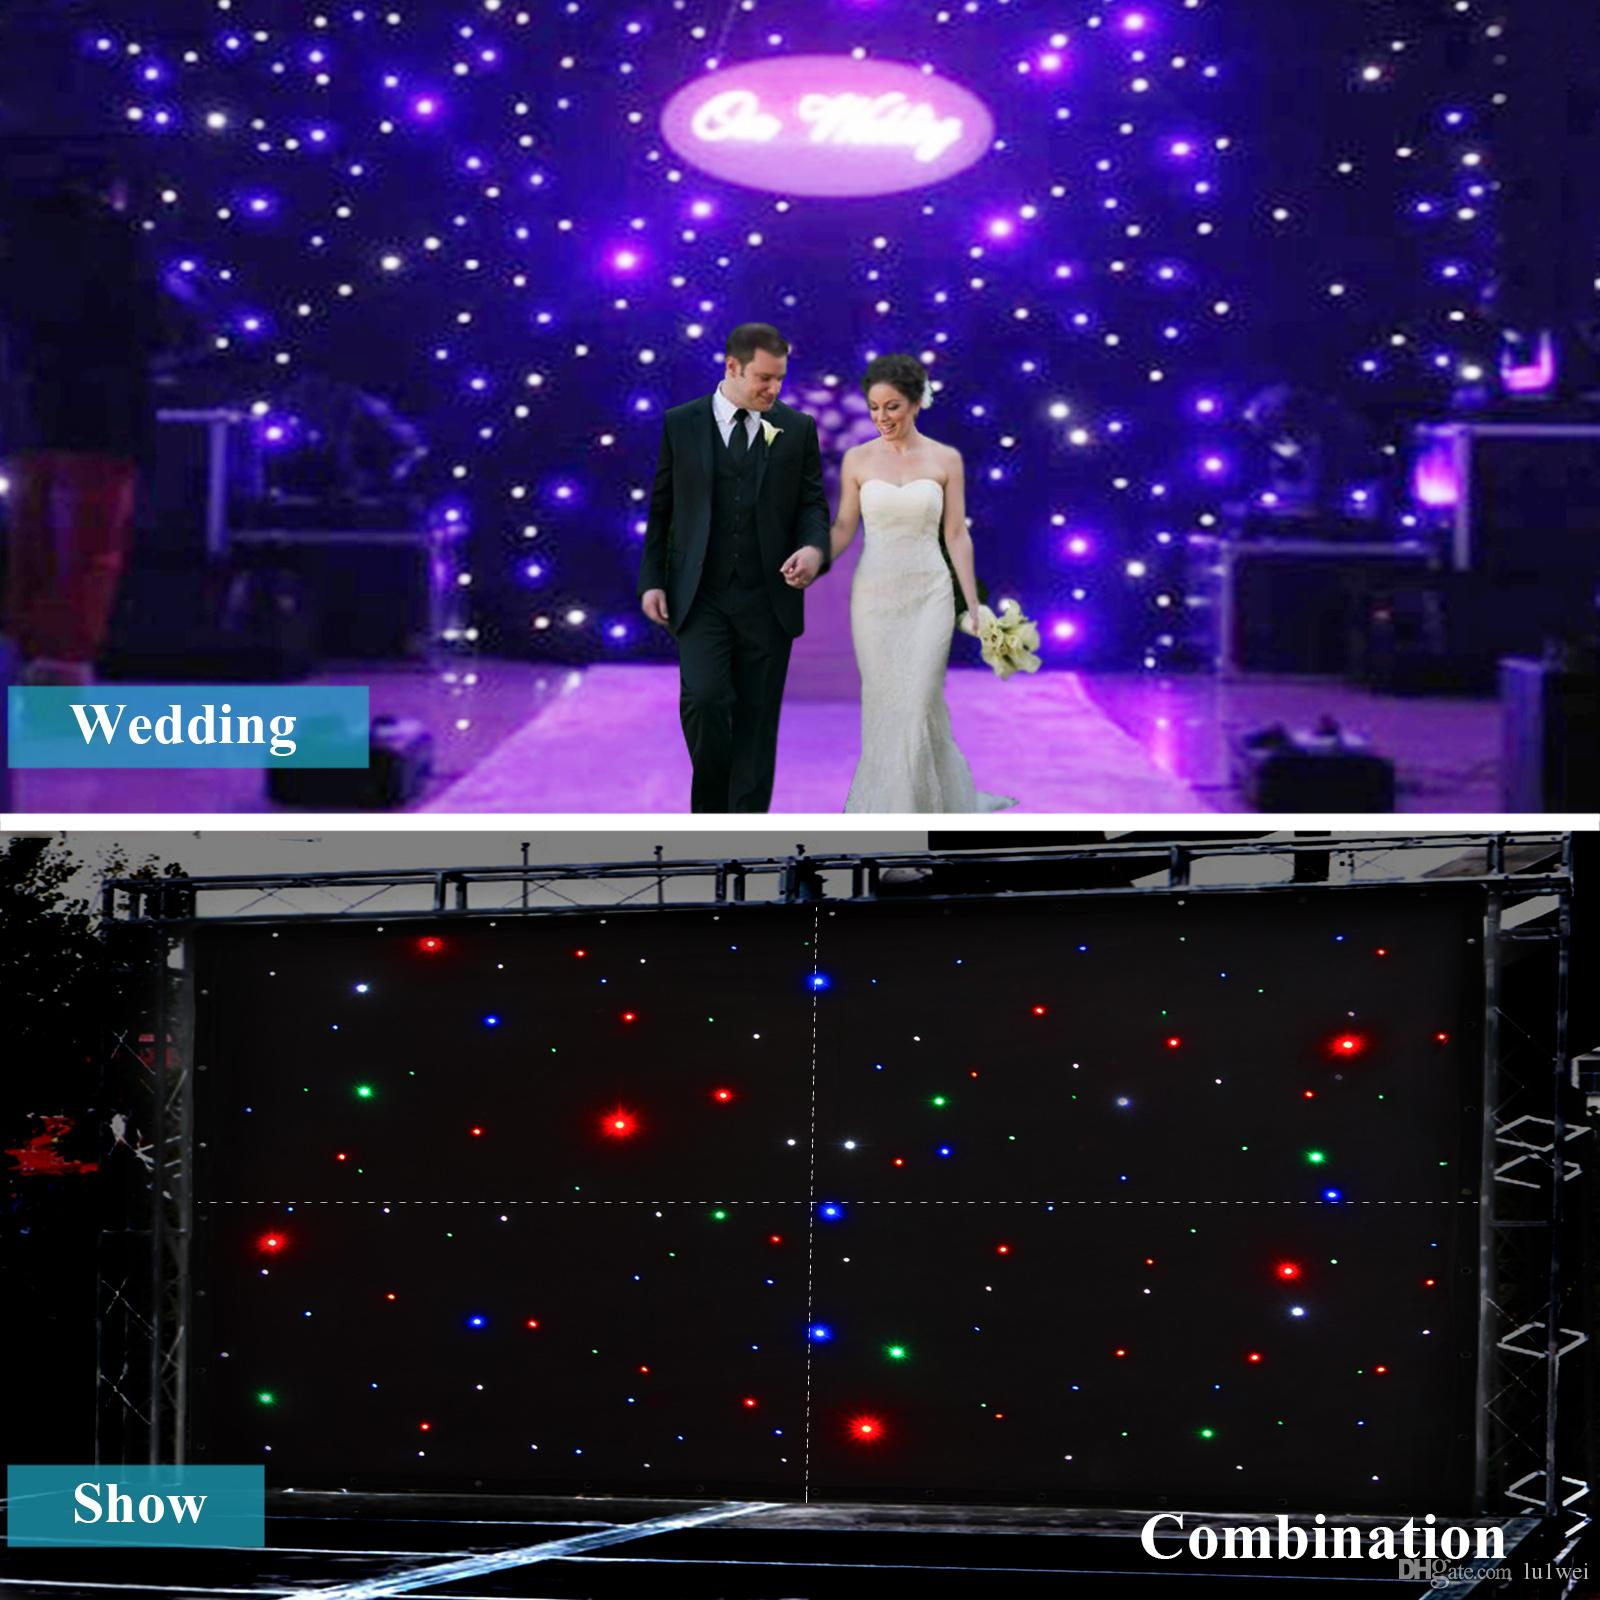 3 x 2m led stage star backdrop 8ch wedding background dj curtain 3 x 2m led stage star backdrop 8ch wedding background dj curtain retardant wedding decoration supplies western wedding decorations from lu1wei thecheapjerseys Choice Image